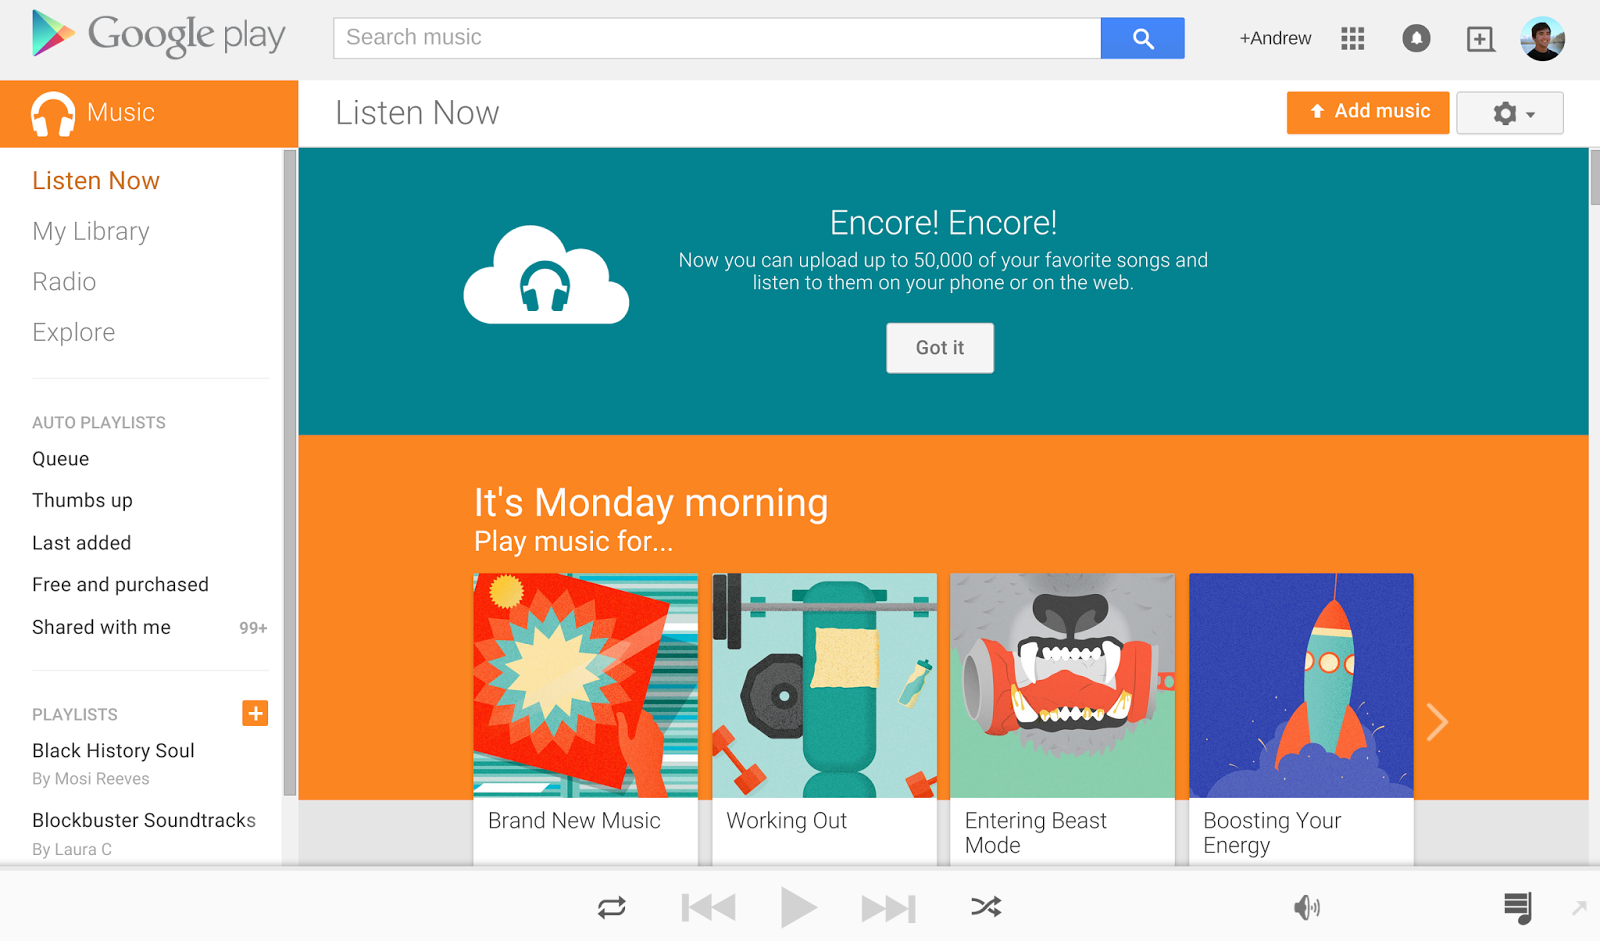 10 Tricks To Make Yourself A Google Play Music Master | Gizmodo